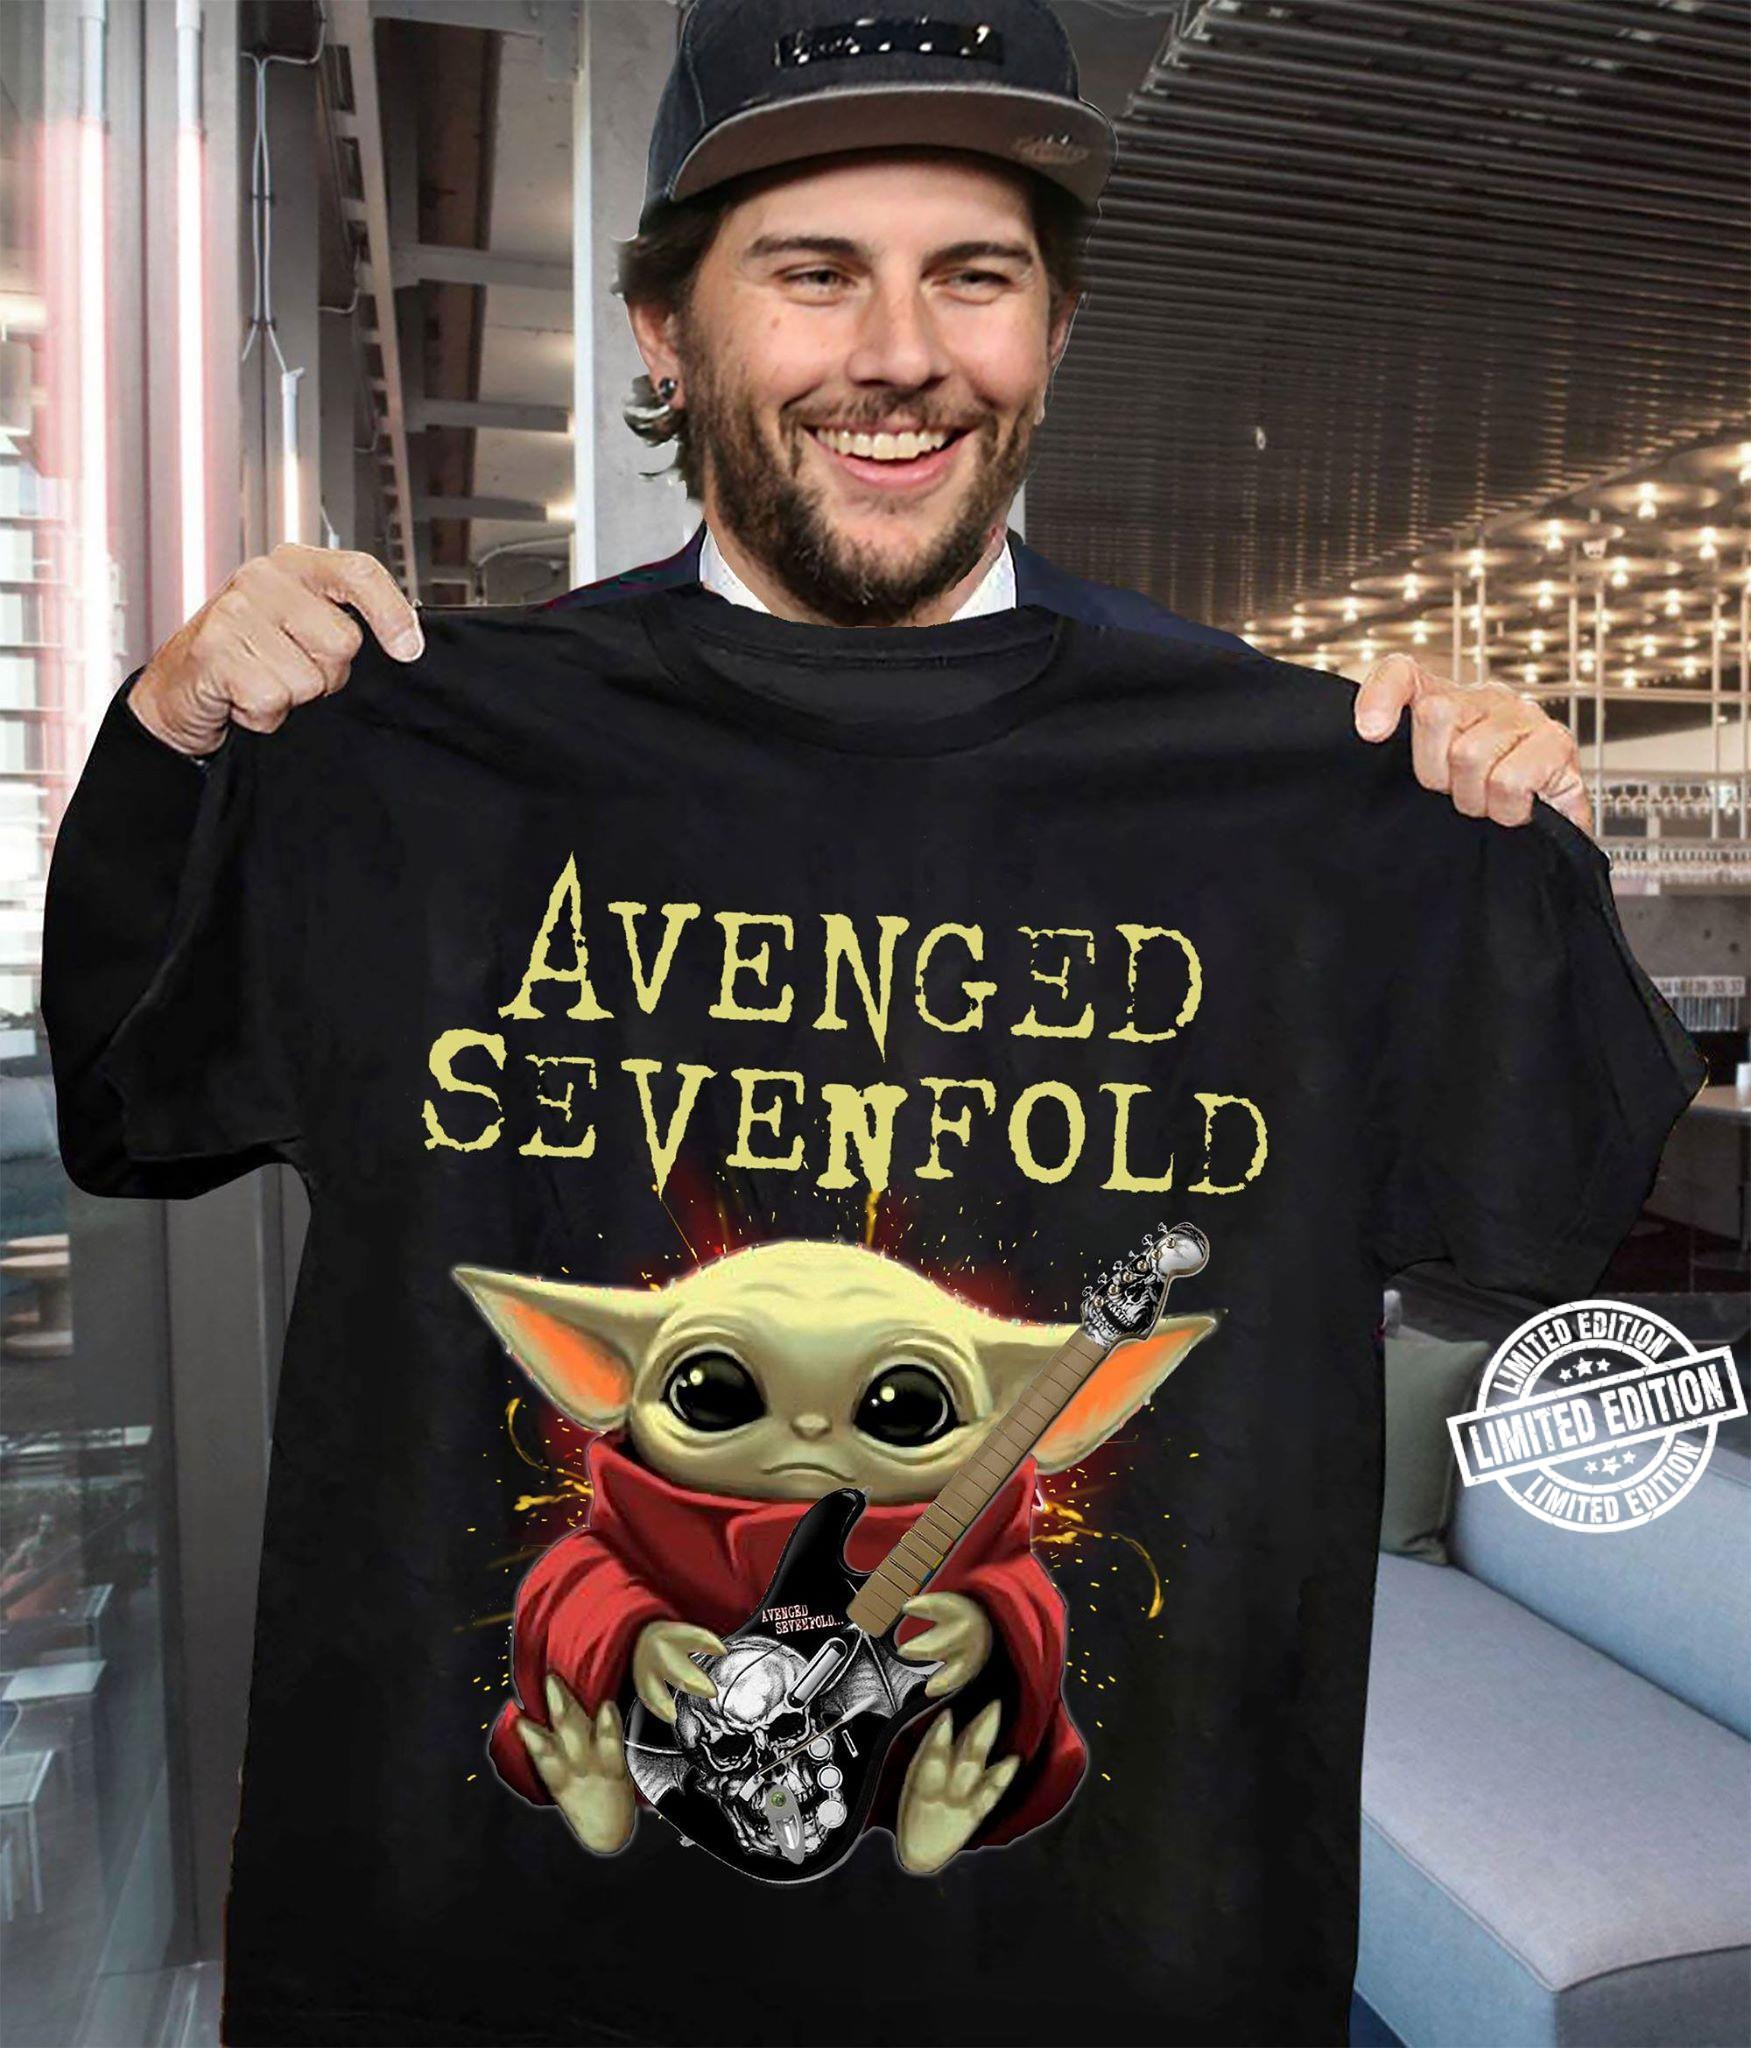 Baby Yoda Avenged sevenfold shirt